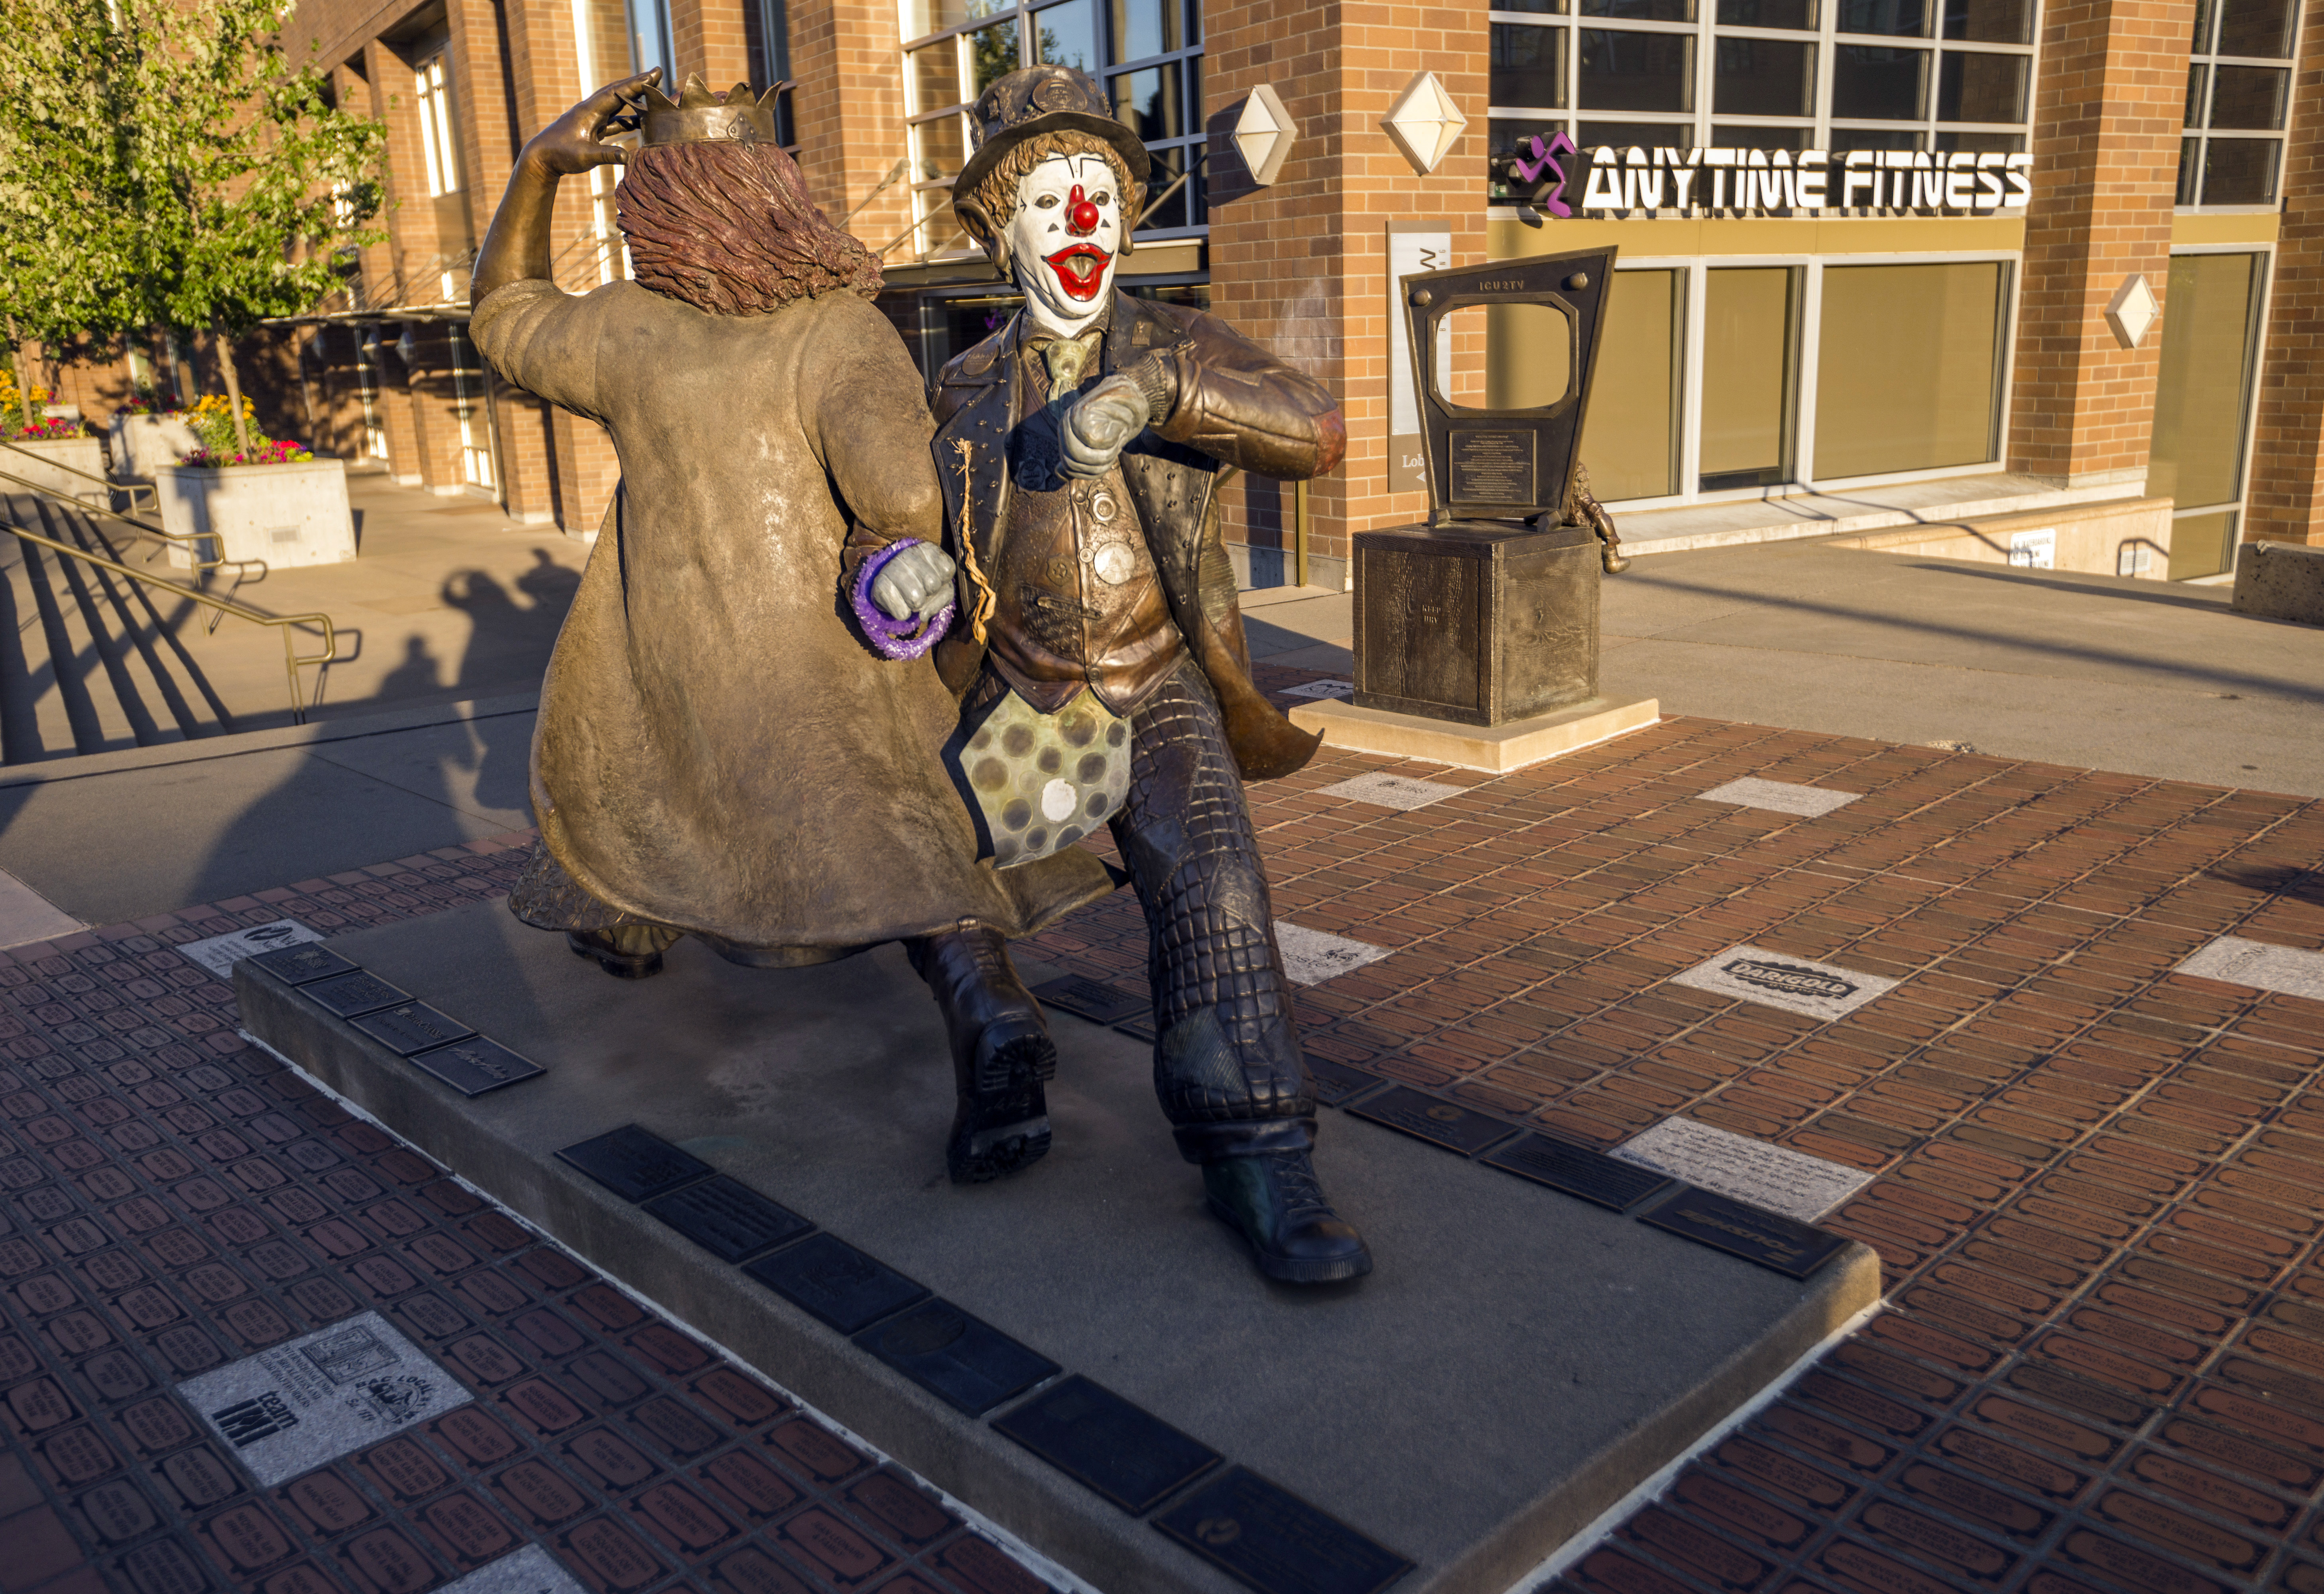 On a brick plaza in front of an Anytime Fitness, a statue of two people with arms linked. The person in front's face is in full clown makeup. (The other figure is facing the other direction.)